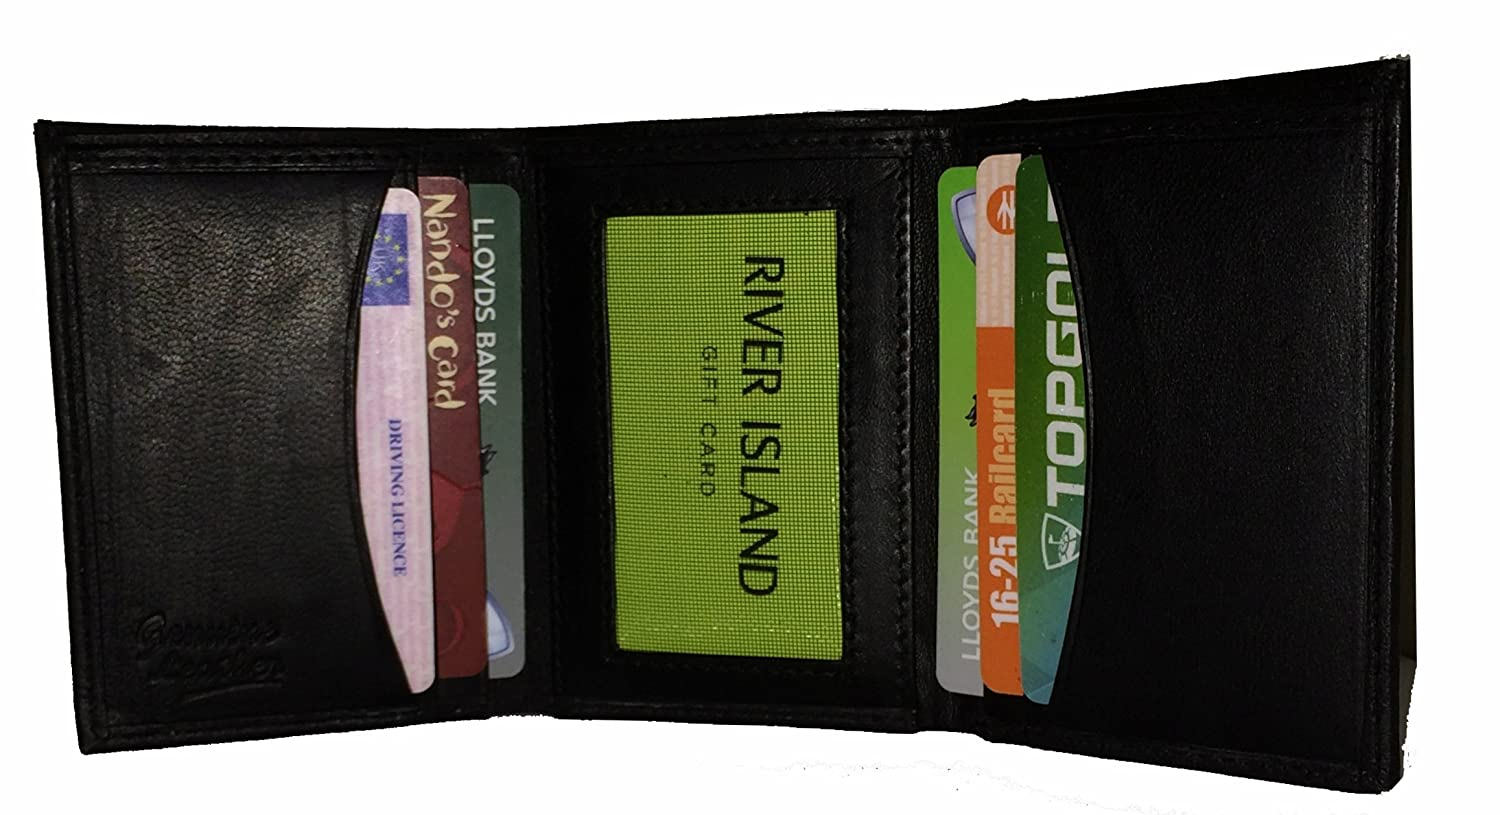 Men's Trifold Real Leather Wallet Card Holder in Black, holds up to 7 Cards, Photo ID, slim design by AOS